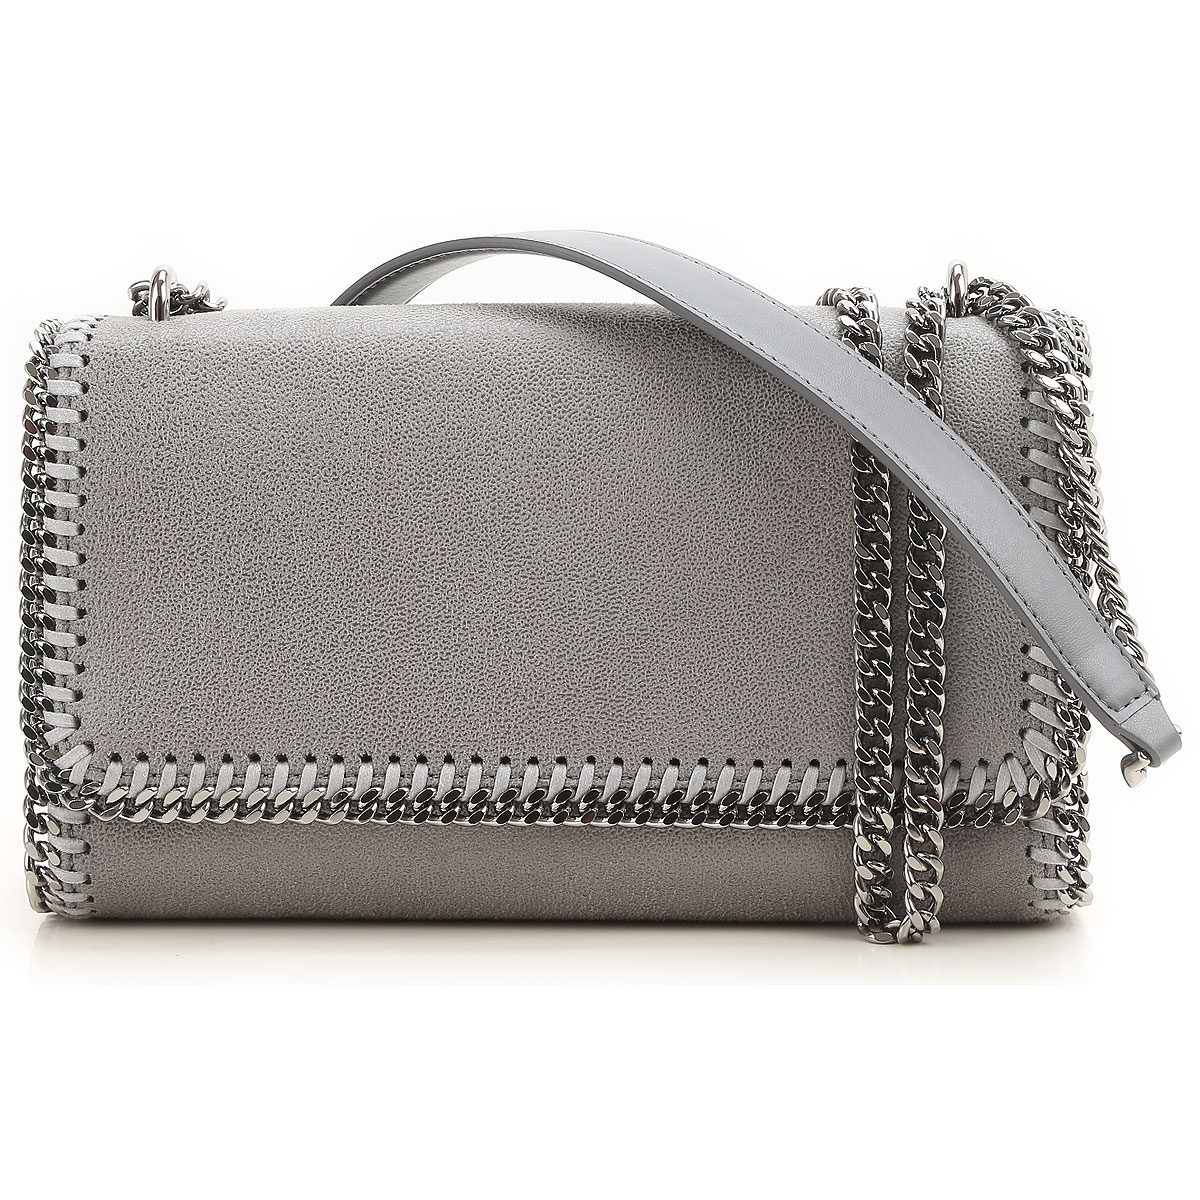 Stella McCartney Shoulder Bag for Women, Grey Light, Eco Leather, 2017 USA-387483